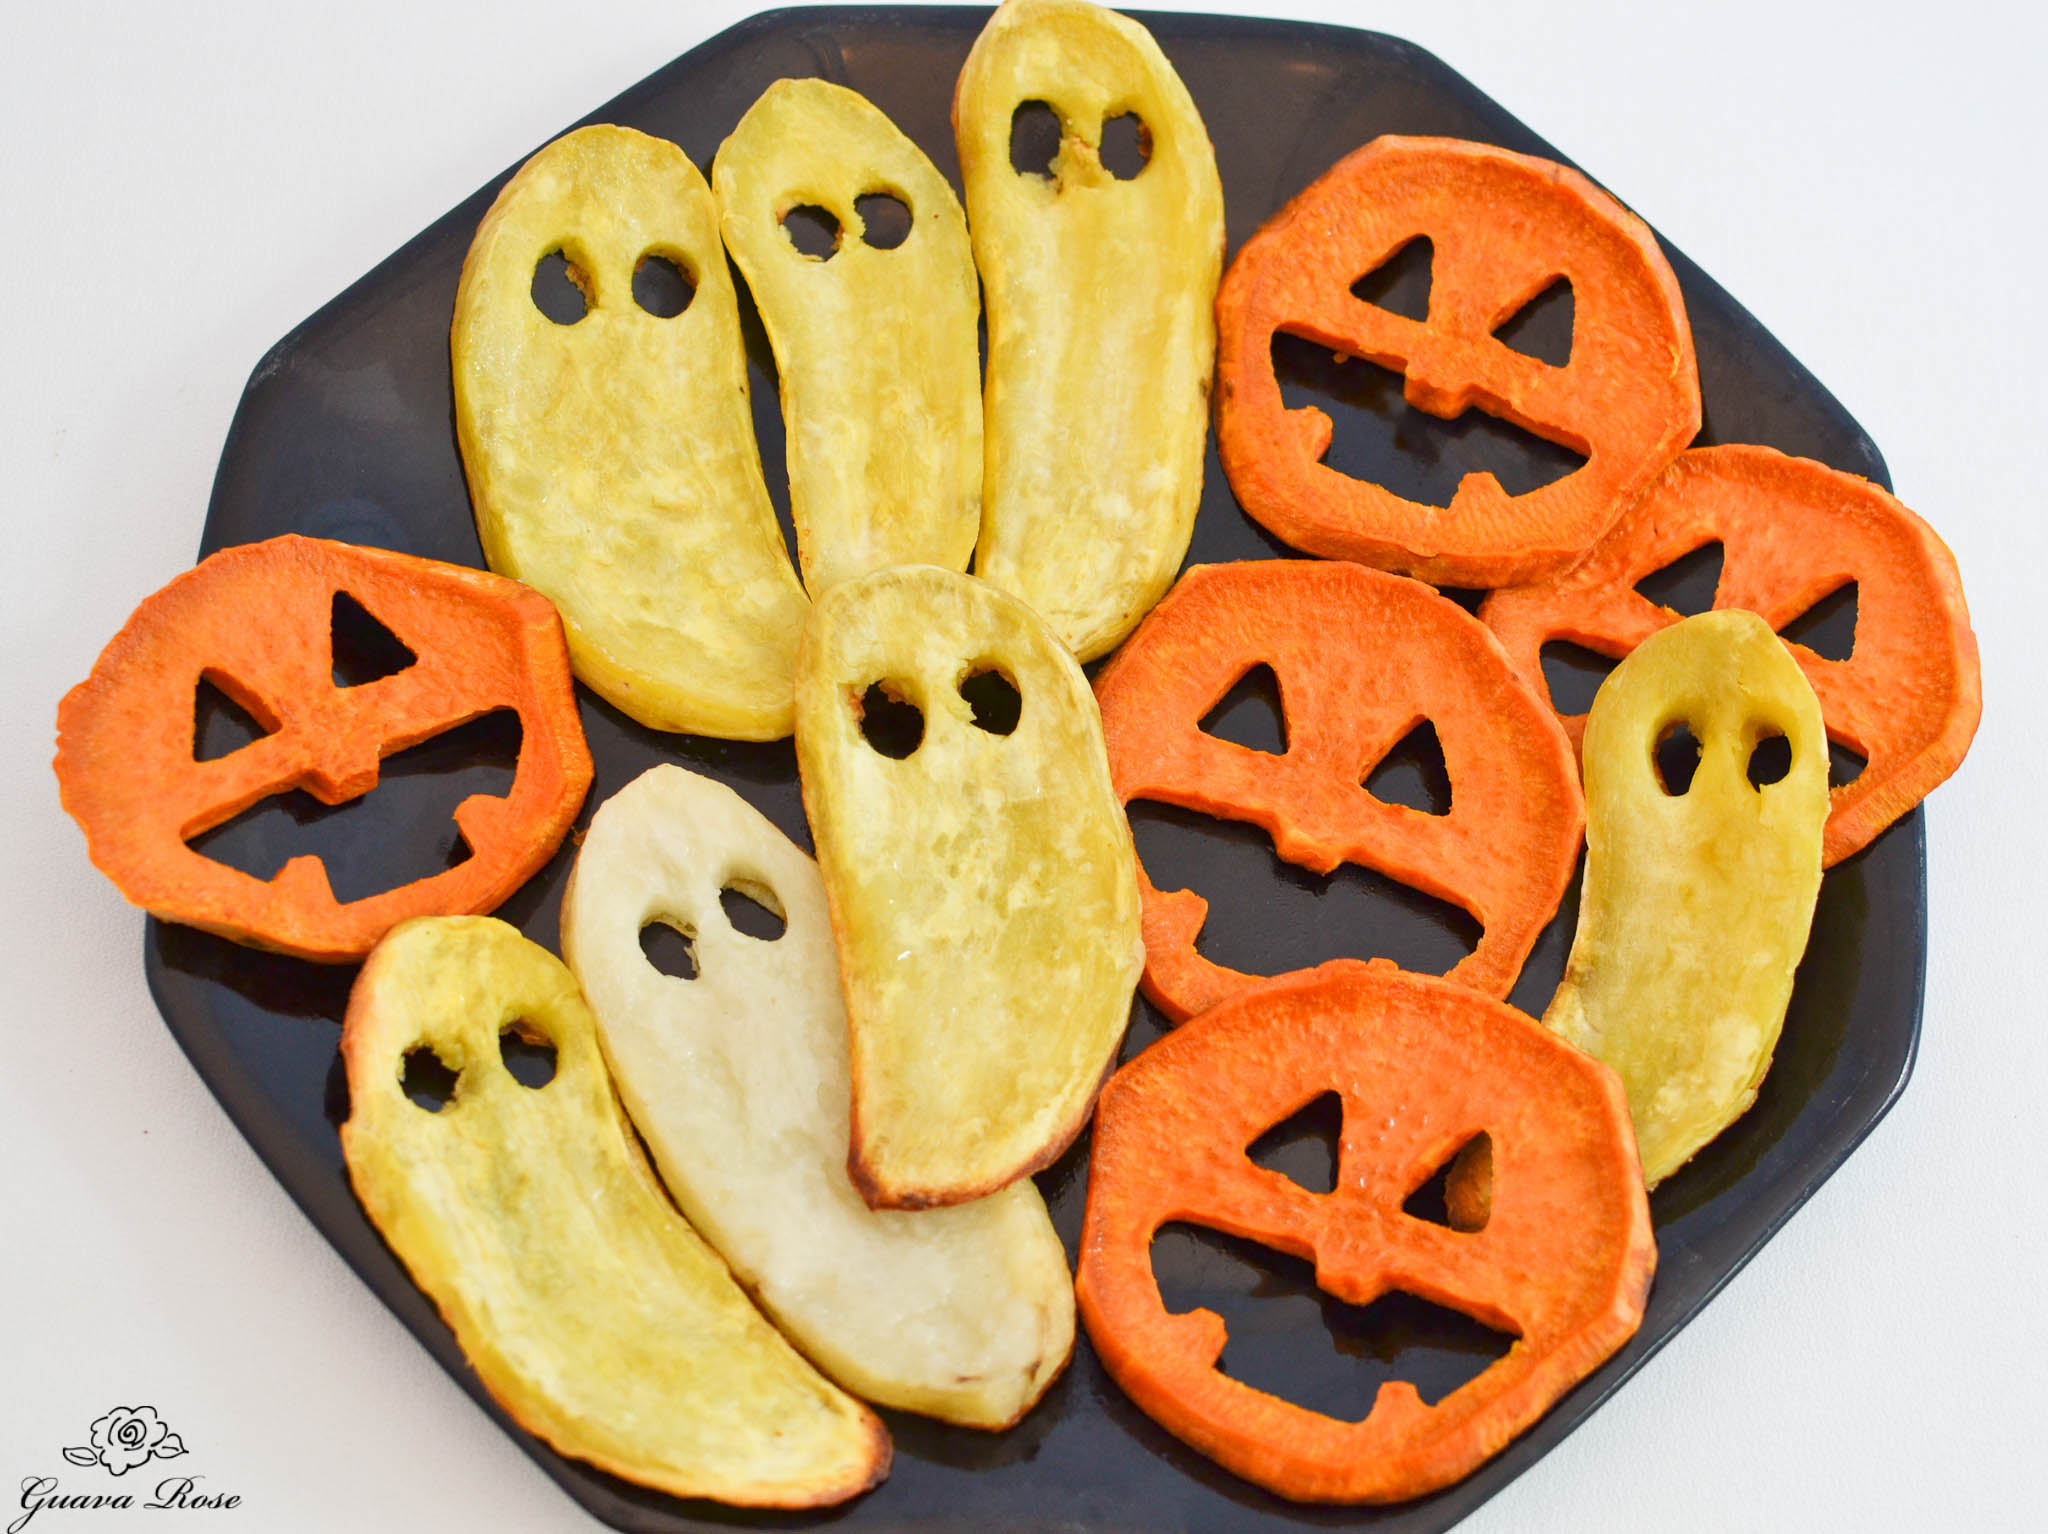 Roasted Sweet potato jack-o-lanterns and ghosts, topview